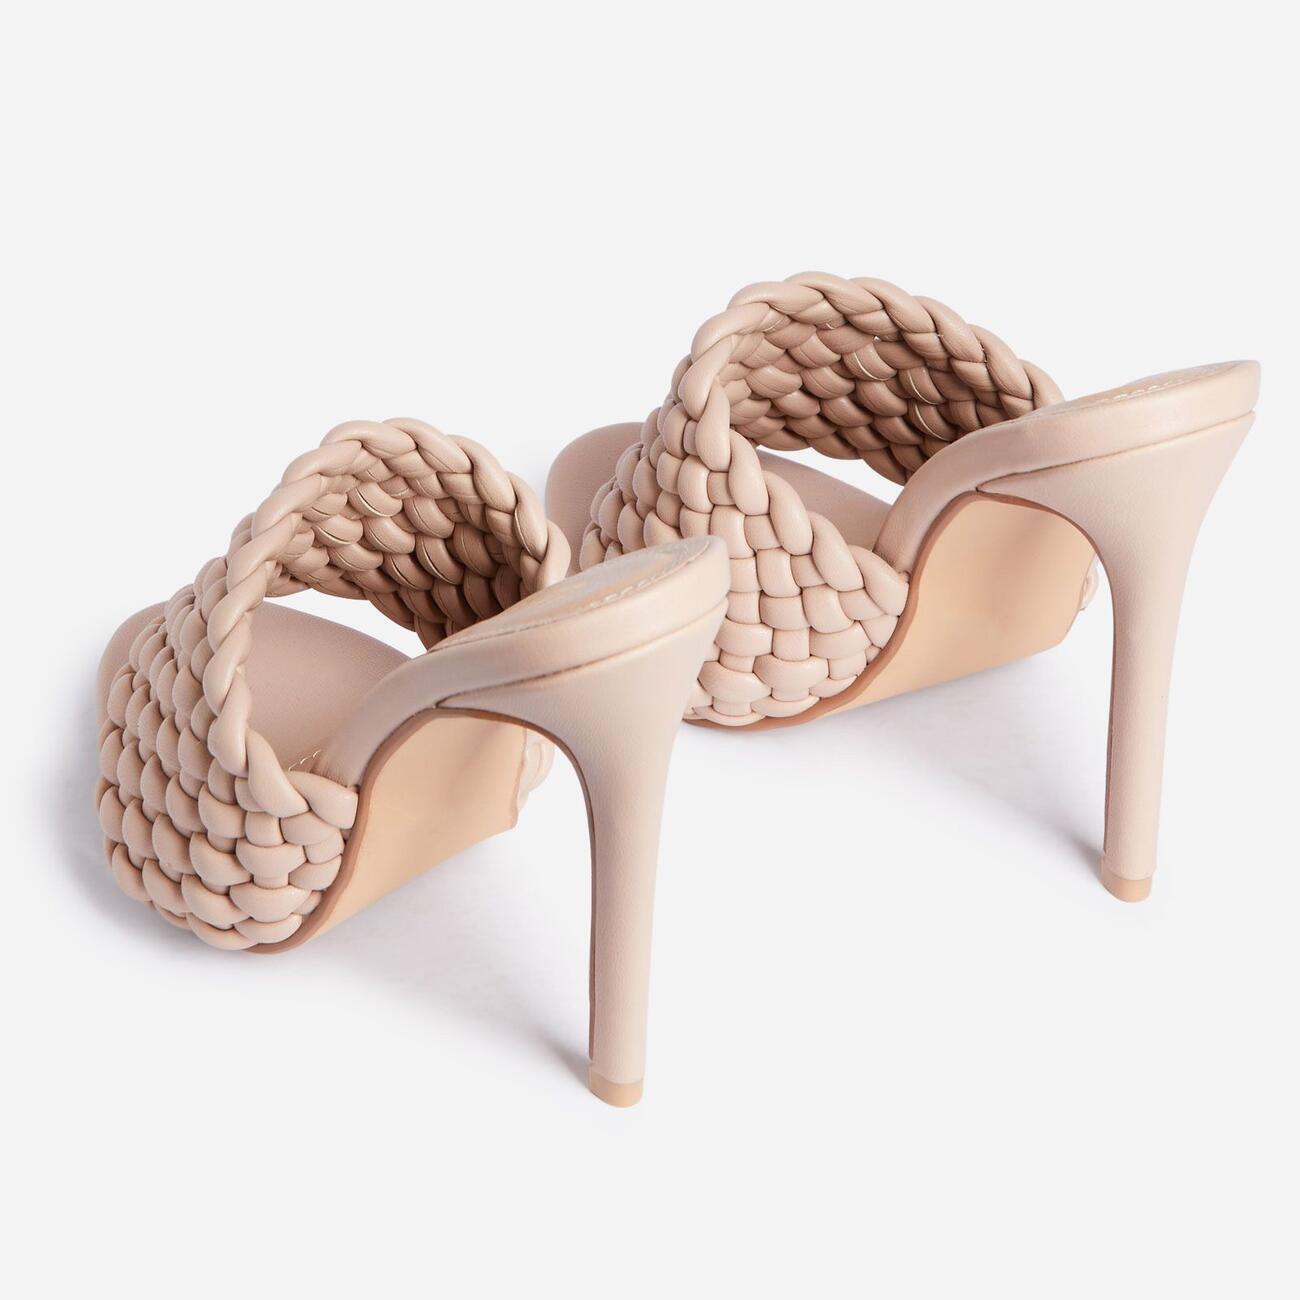 Twisted Woven Detail Peep Toe Heel Mule In Nude Faux Leather Image 3